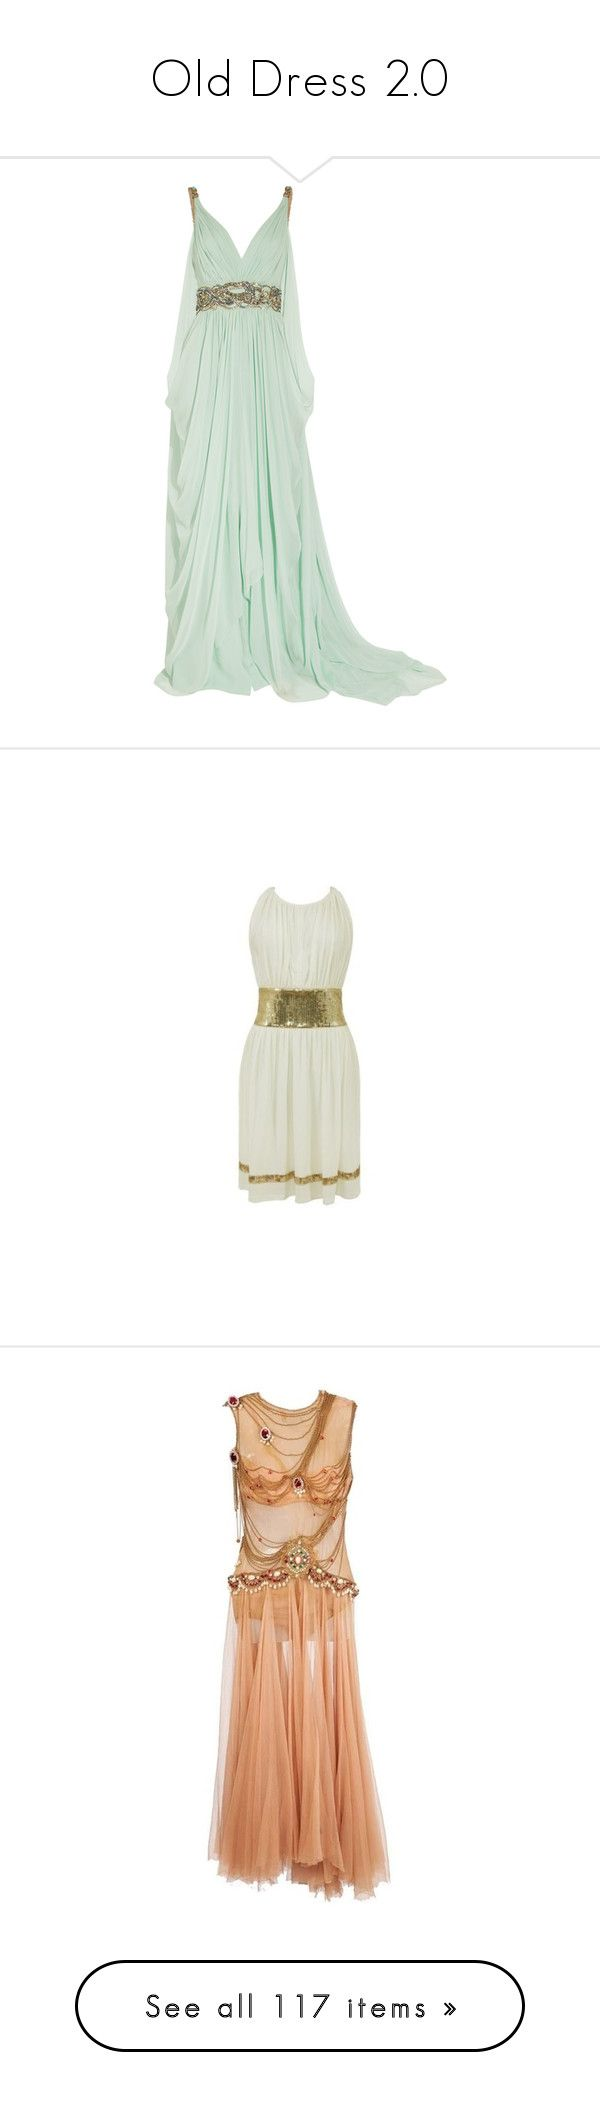 """""""Old Dress 2.0"""" by kerstinxx ❤ liked on Polyvore featuring dresses, gowns, vestidos, long dresses, mint, embroidered gown, green ball gown, green dress, mint green gown and short green dress"""